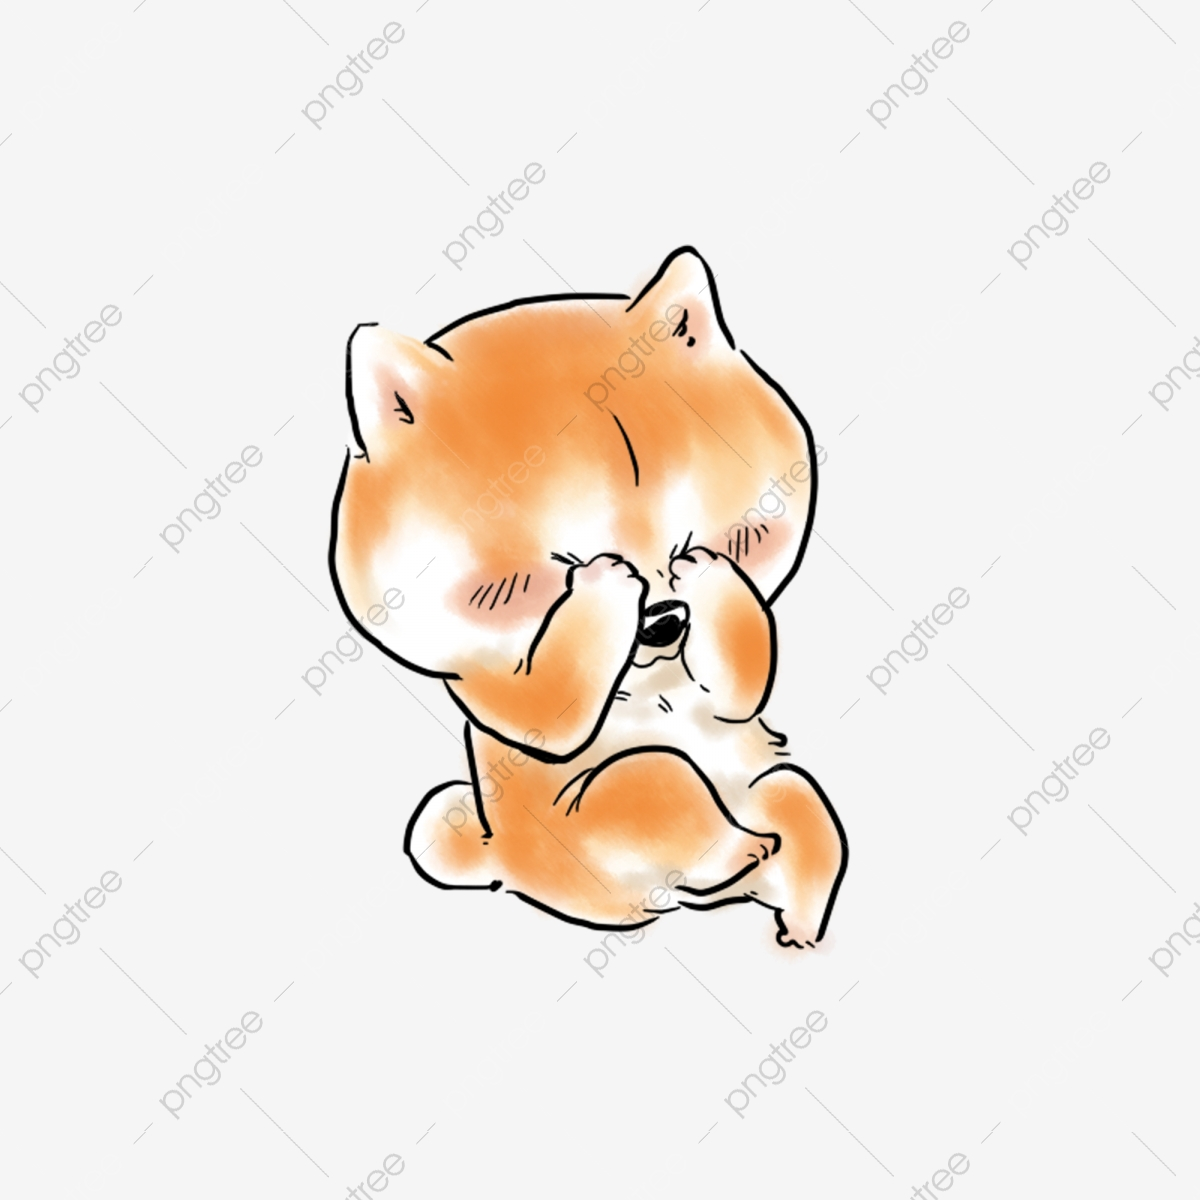 Shiba Inu Png Images Vector And Psd Files Free Download On Pngtree